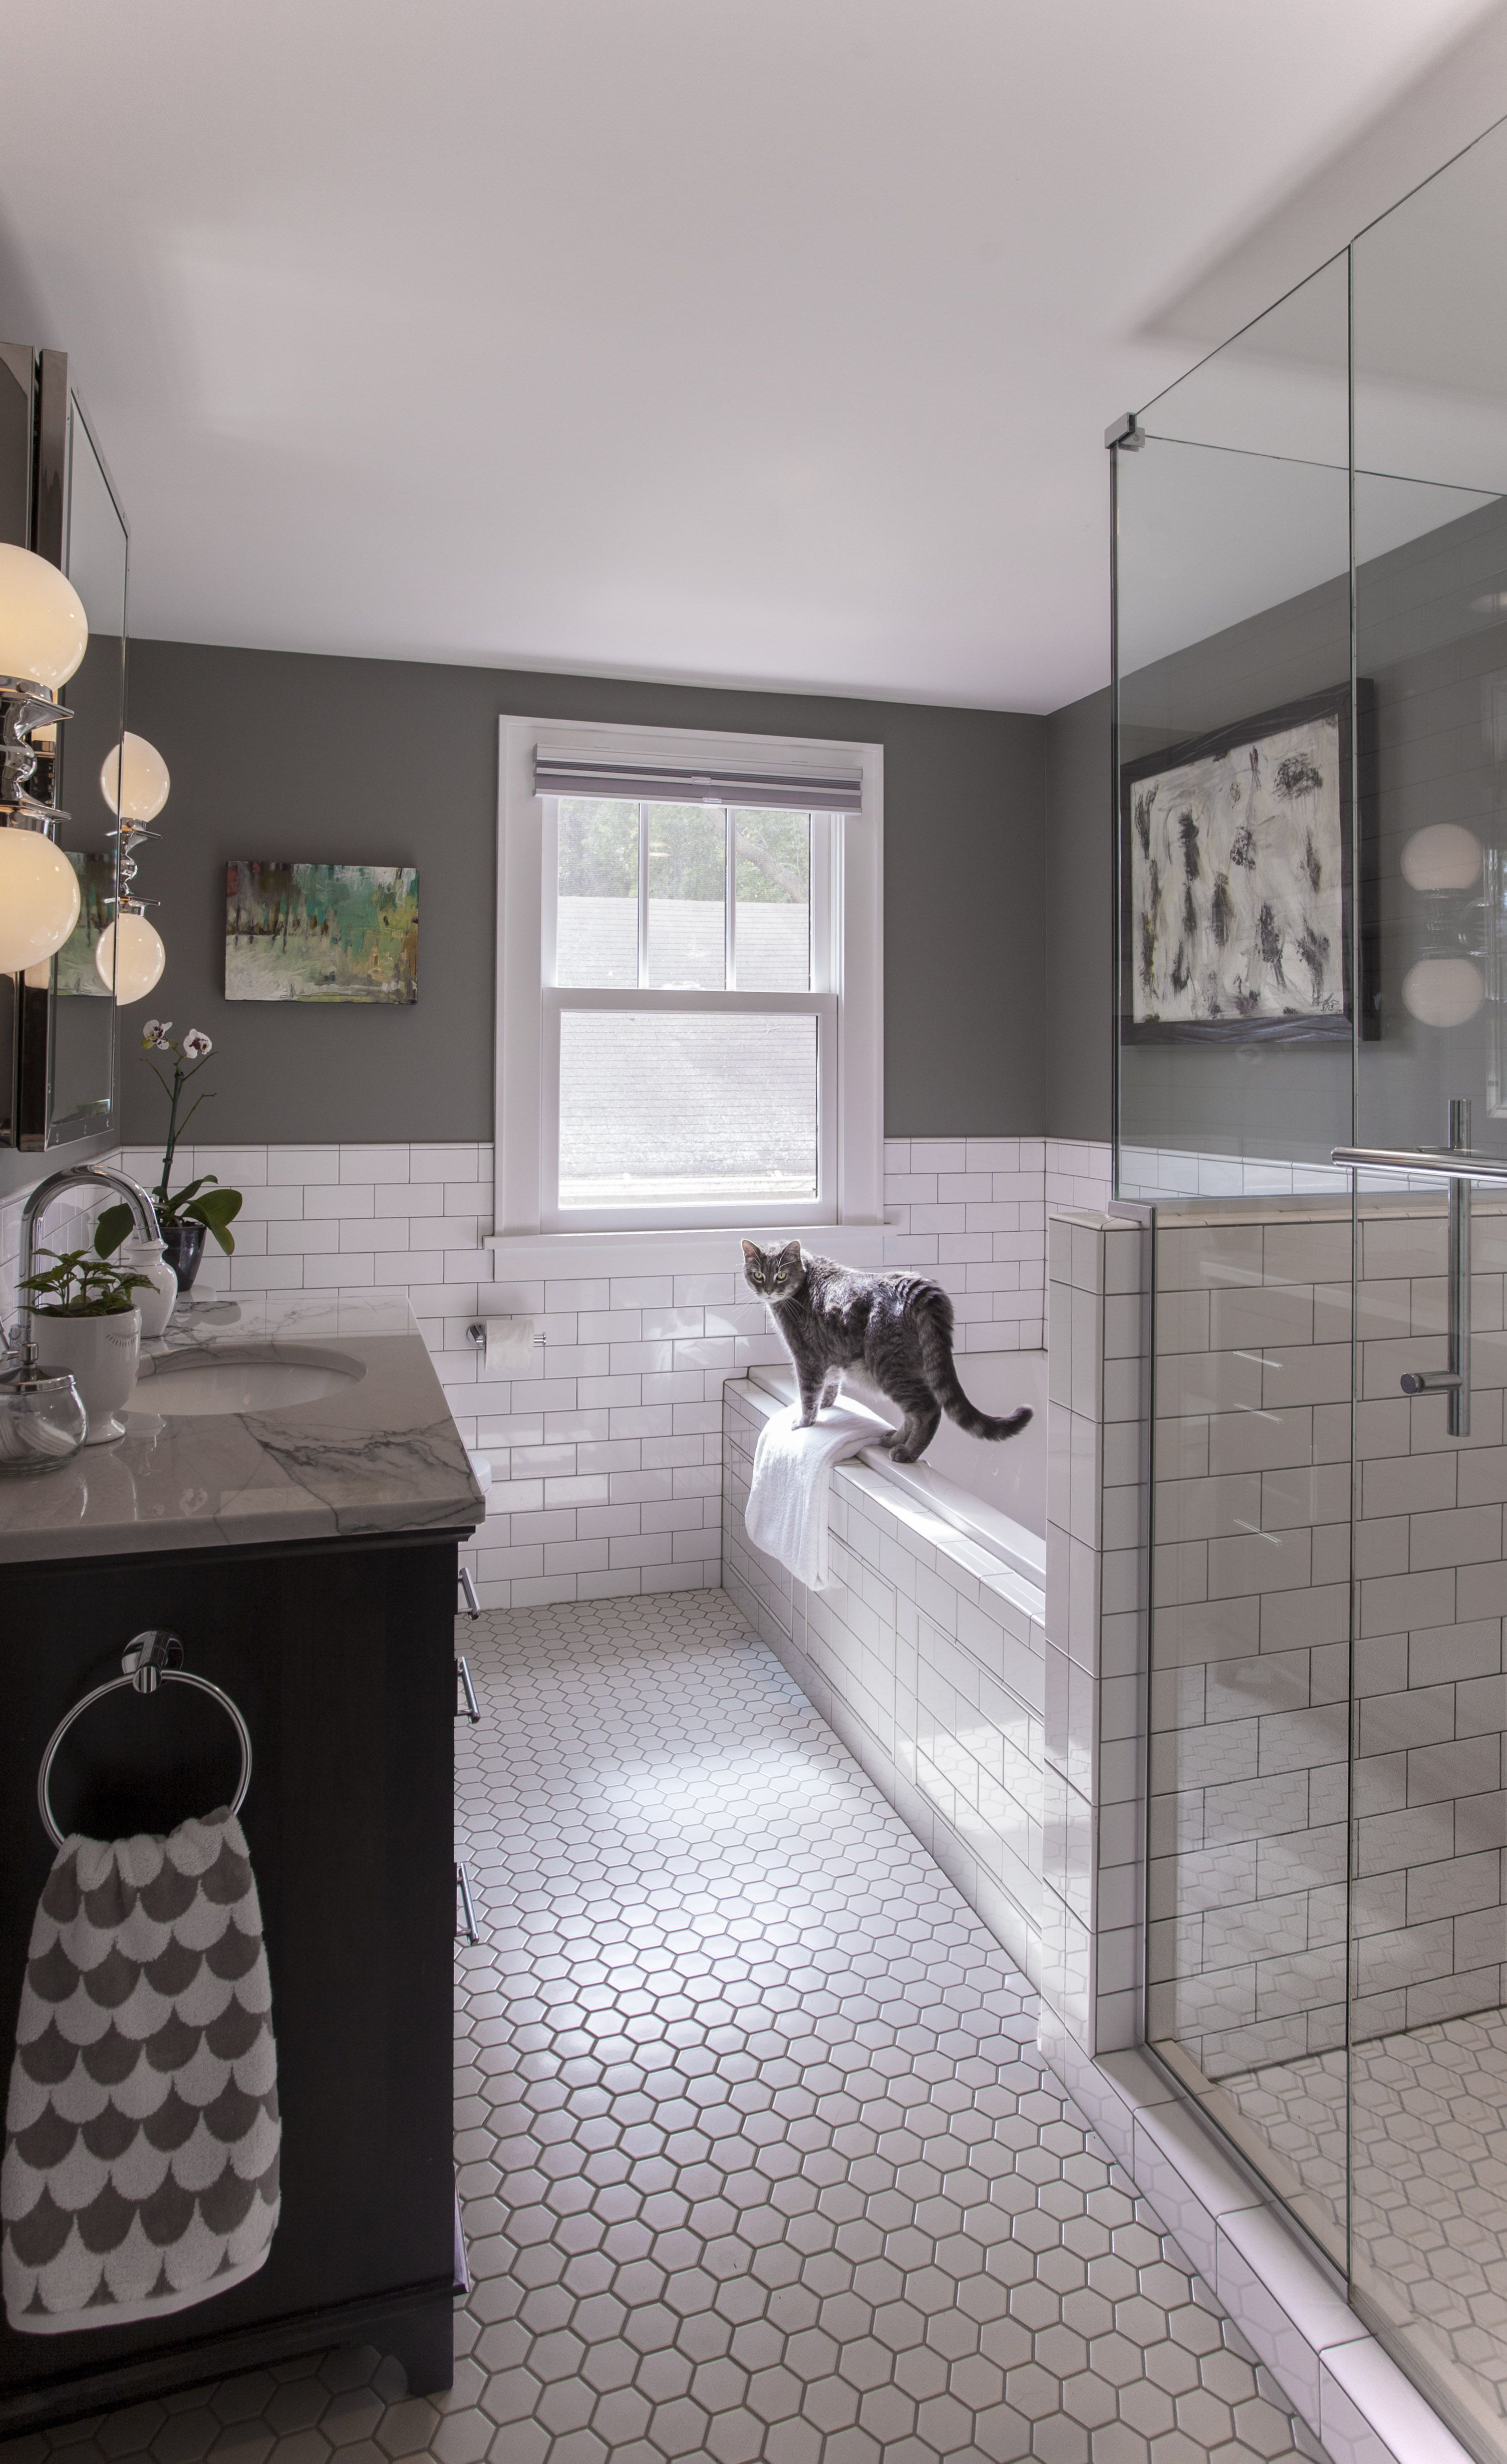 Vintage badezimmer design just got a little space these small bathroom designs will inspire